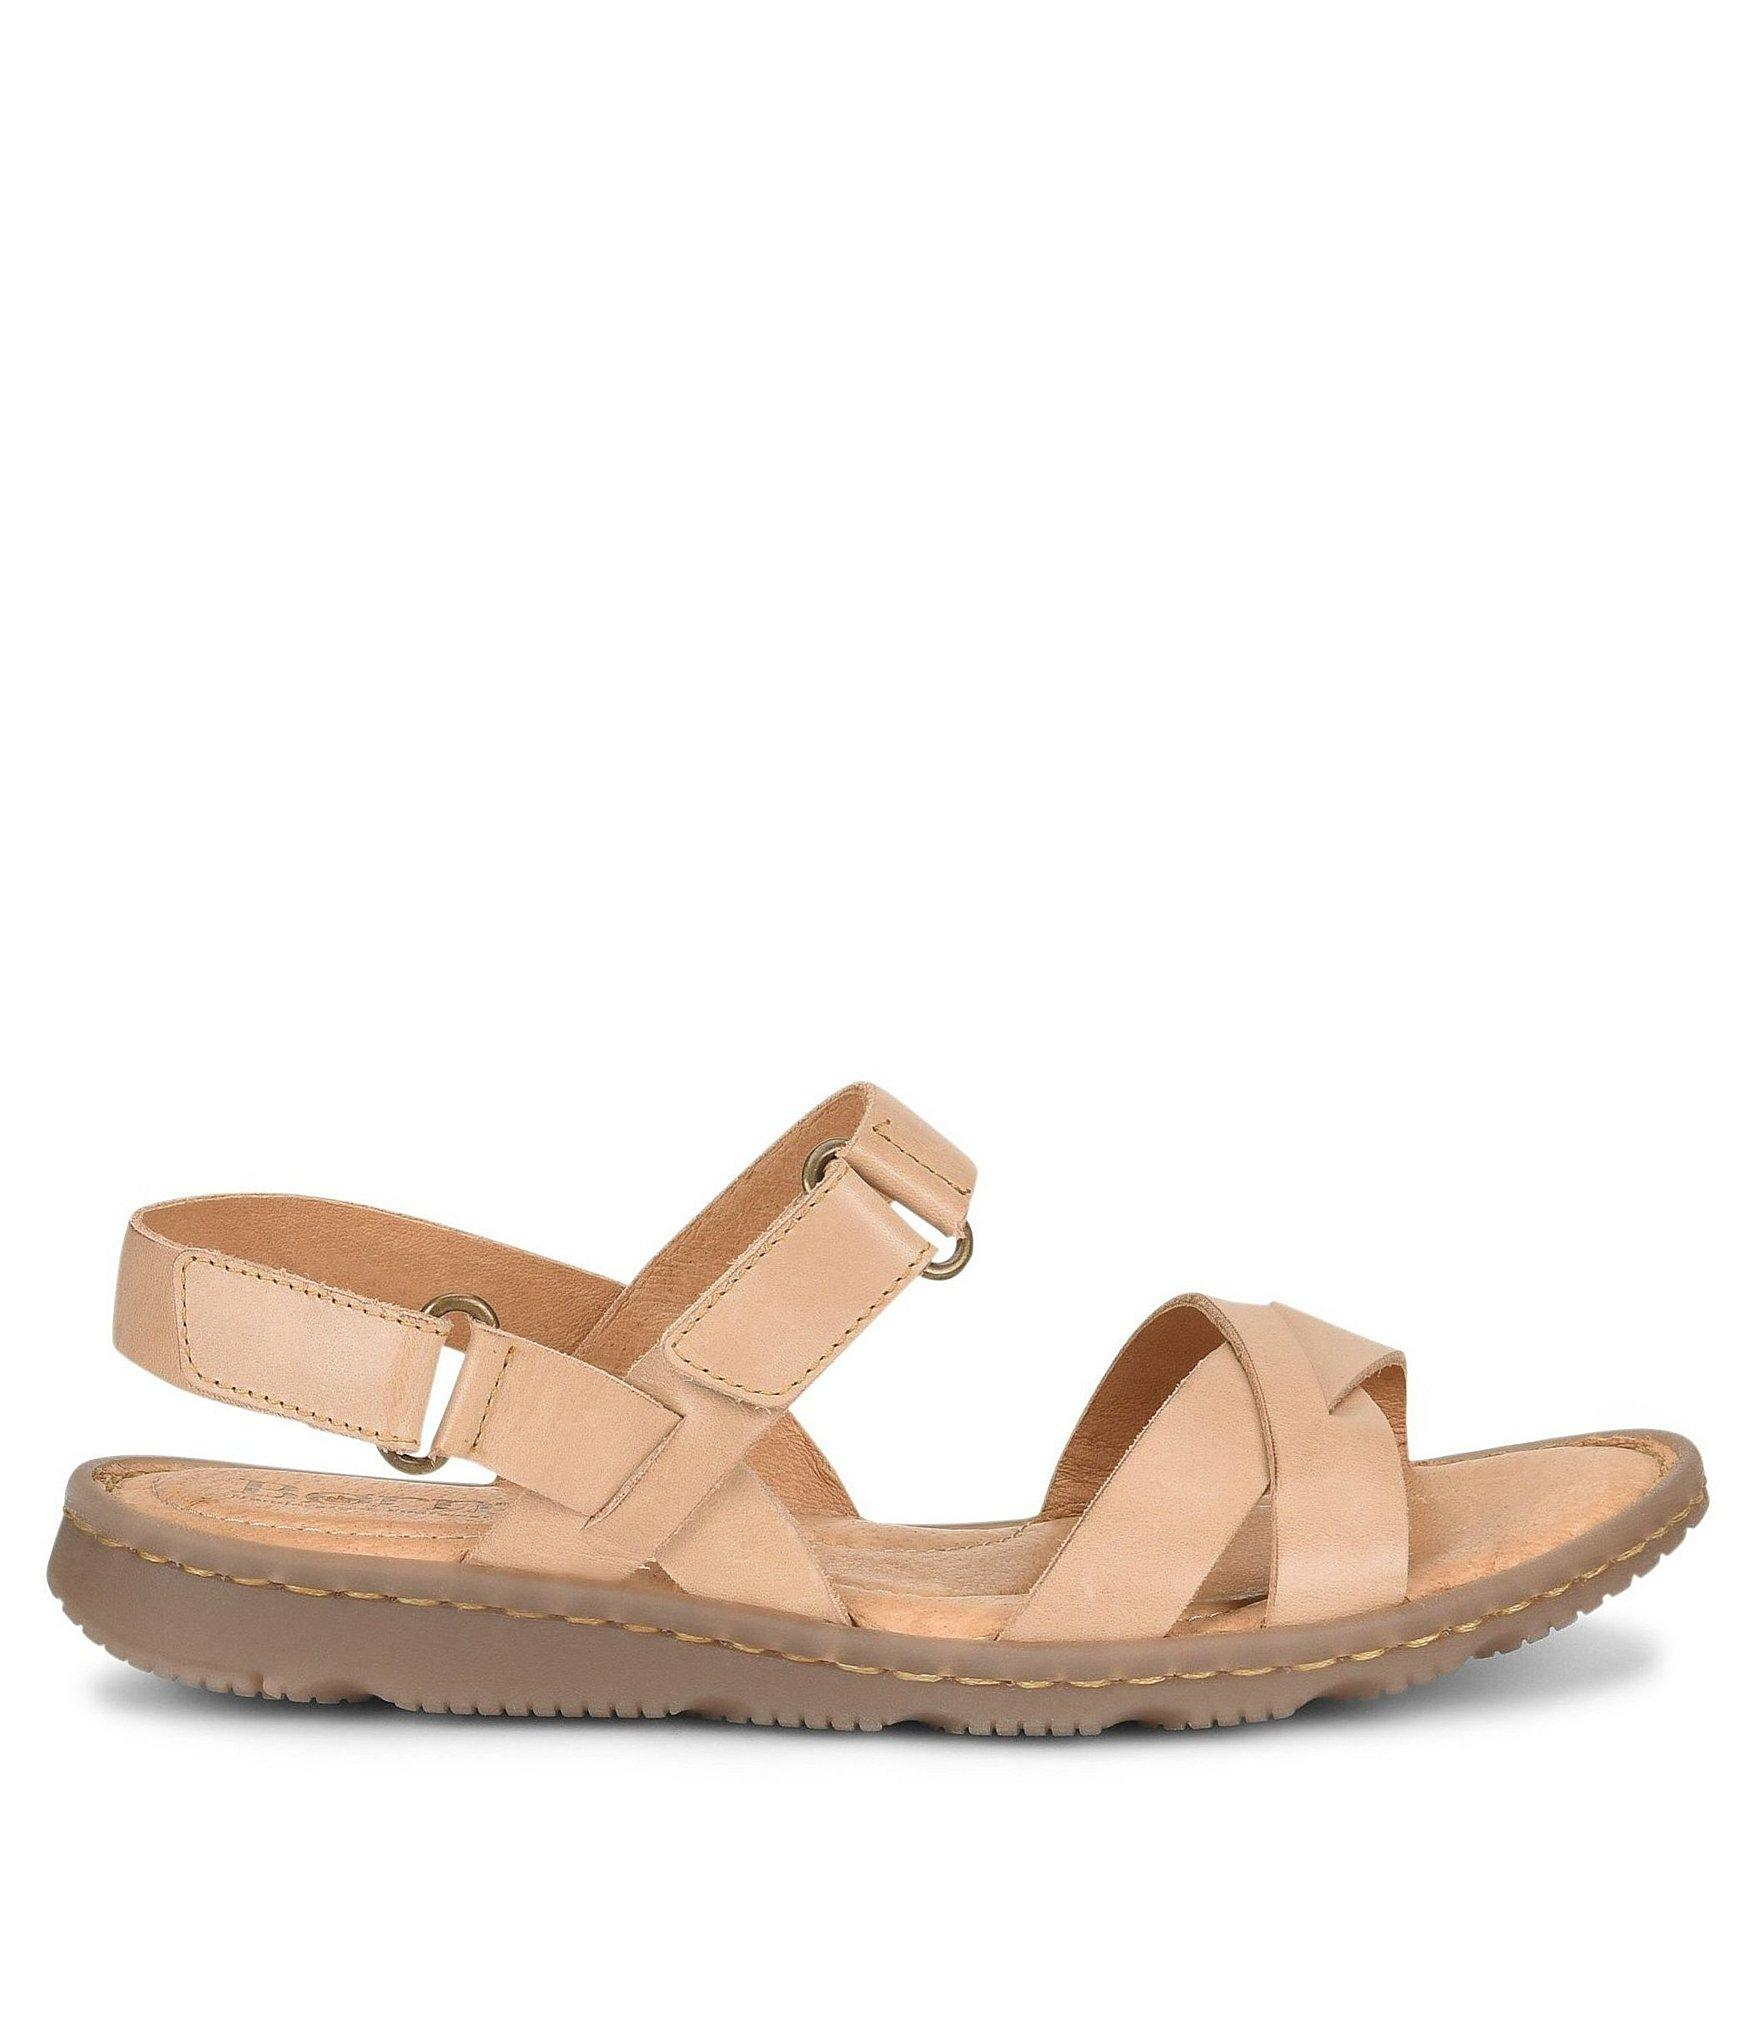 301cf80f110 Lyst - Born Jemez Leather Banded Sandals in Natural